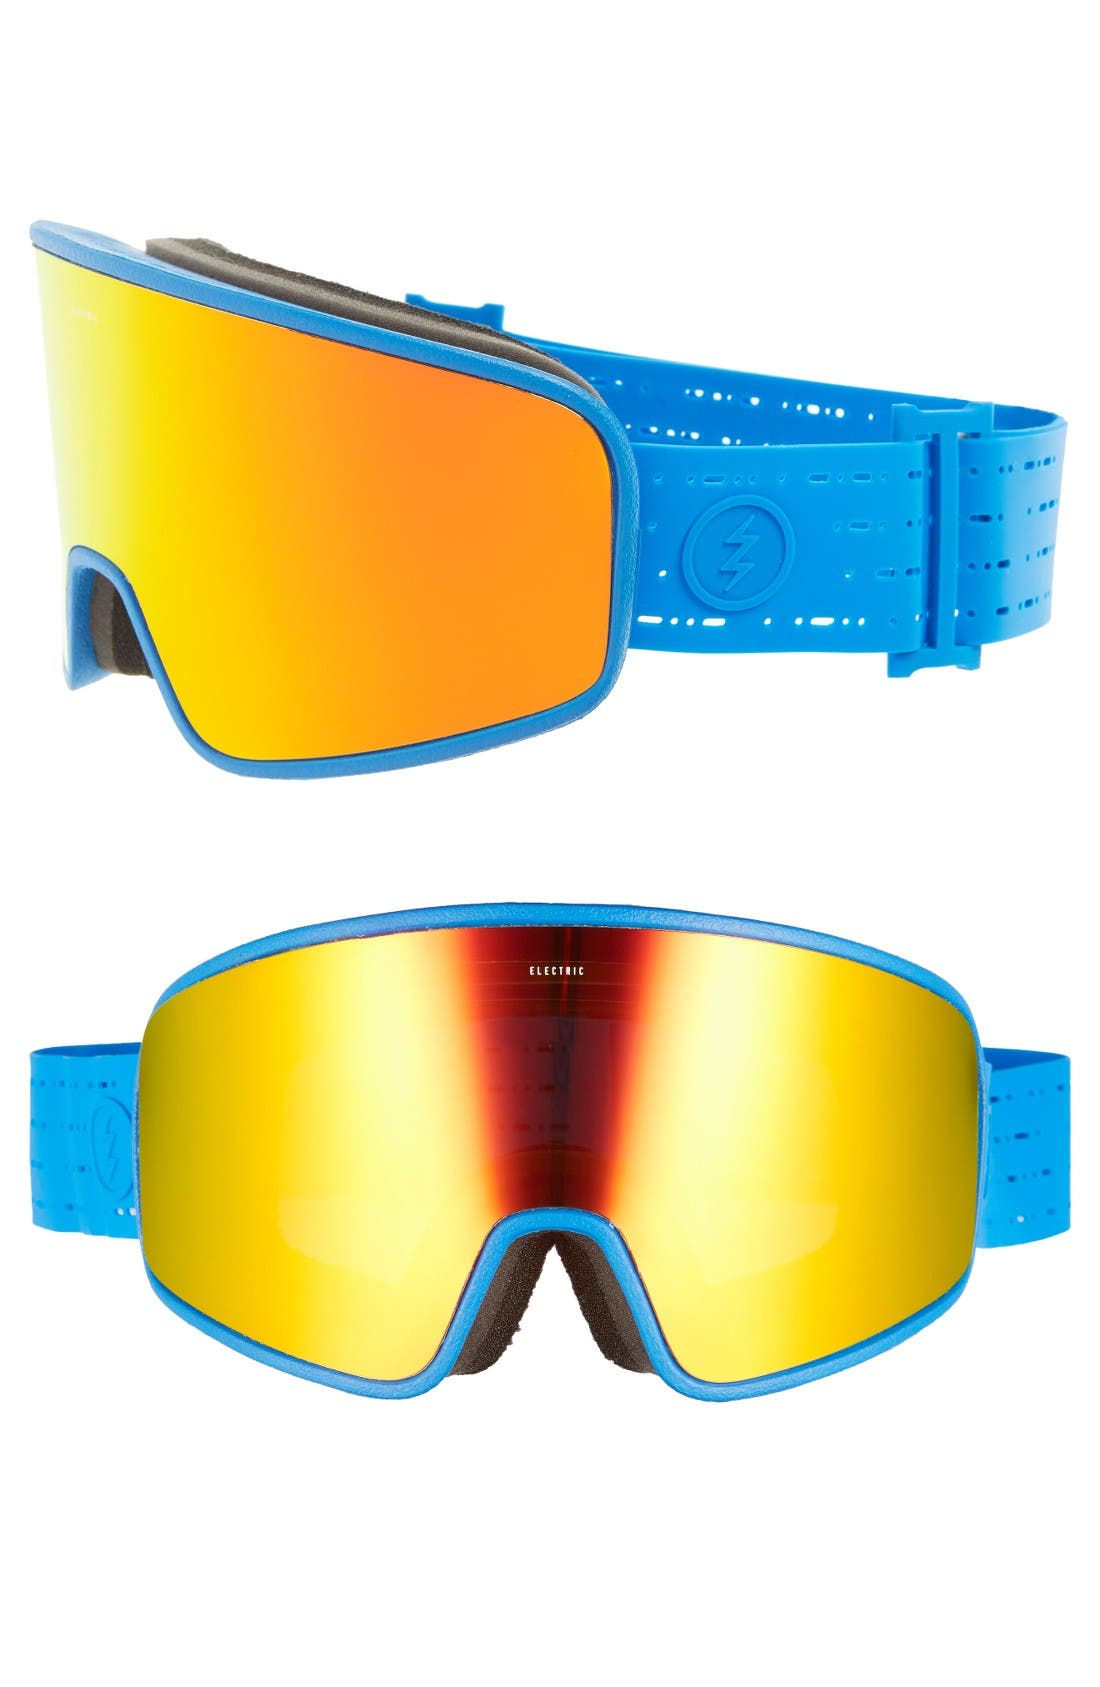 Electrolite 215mm Snow Goggles,                         Main,                         color, Royal Blue/ Brose/ Red Chrome